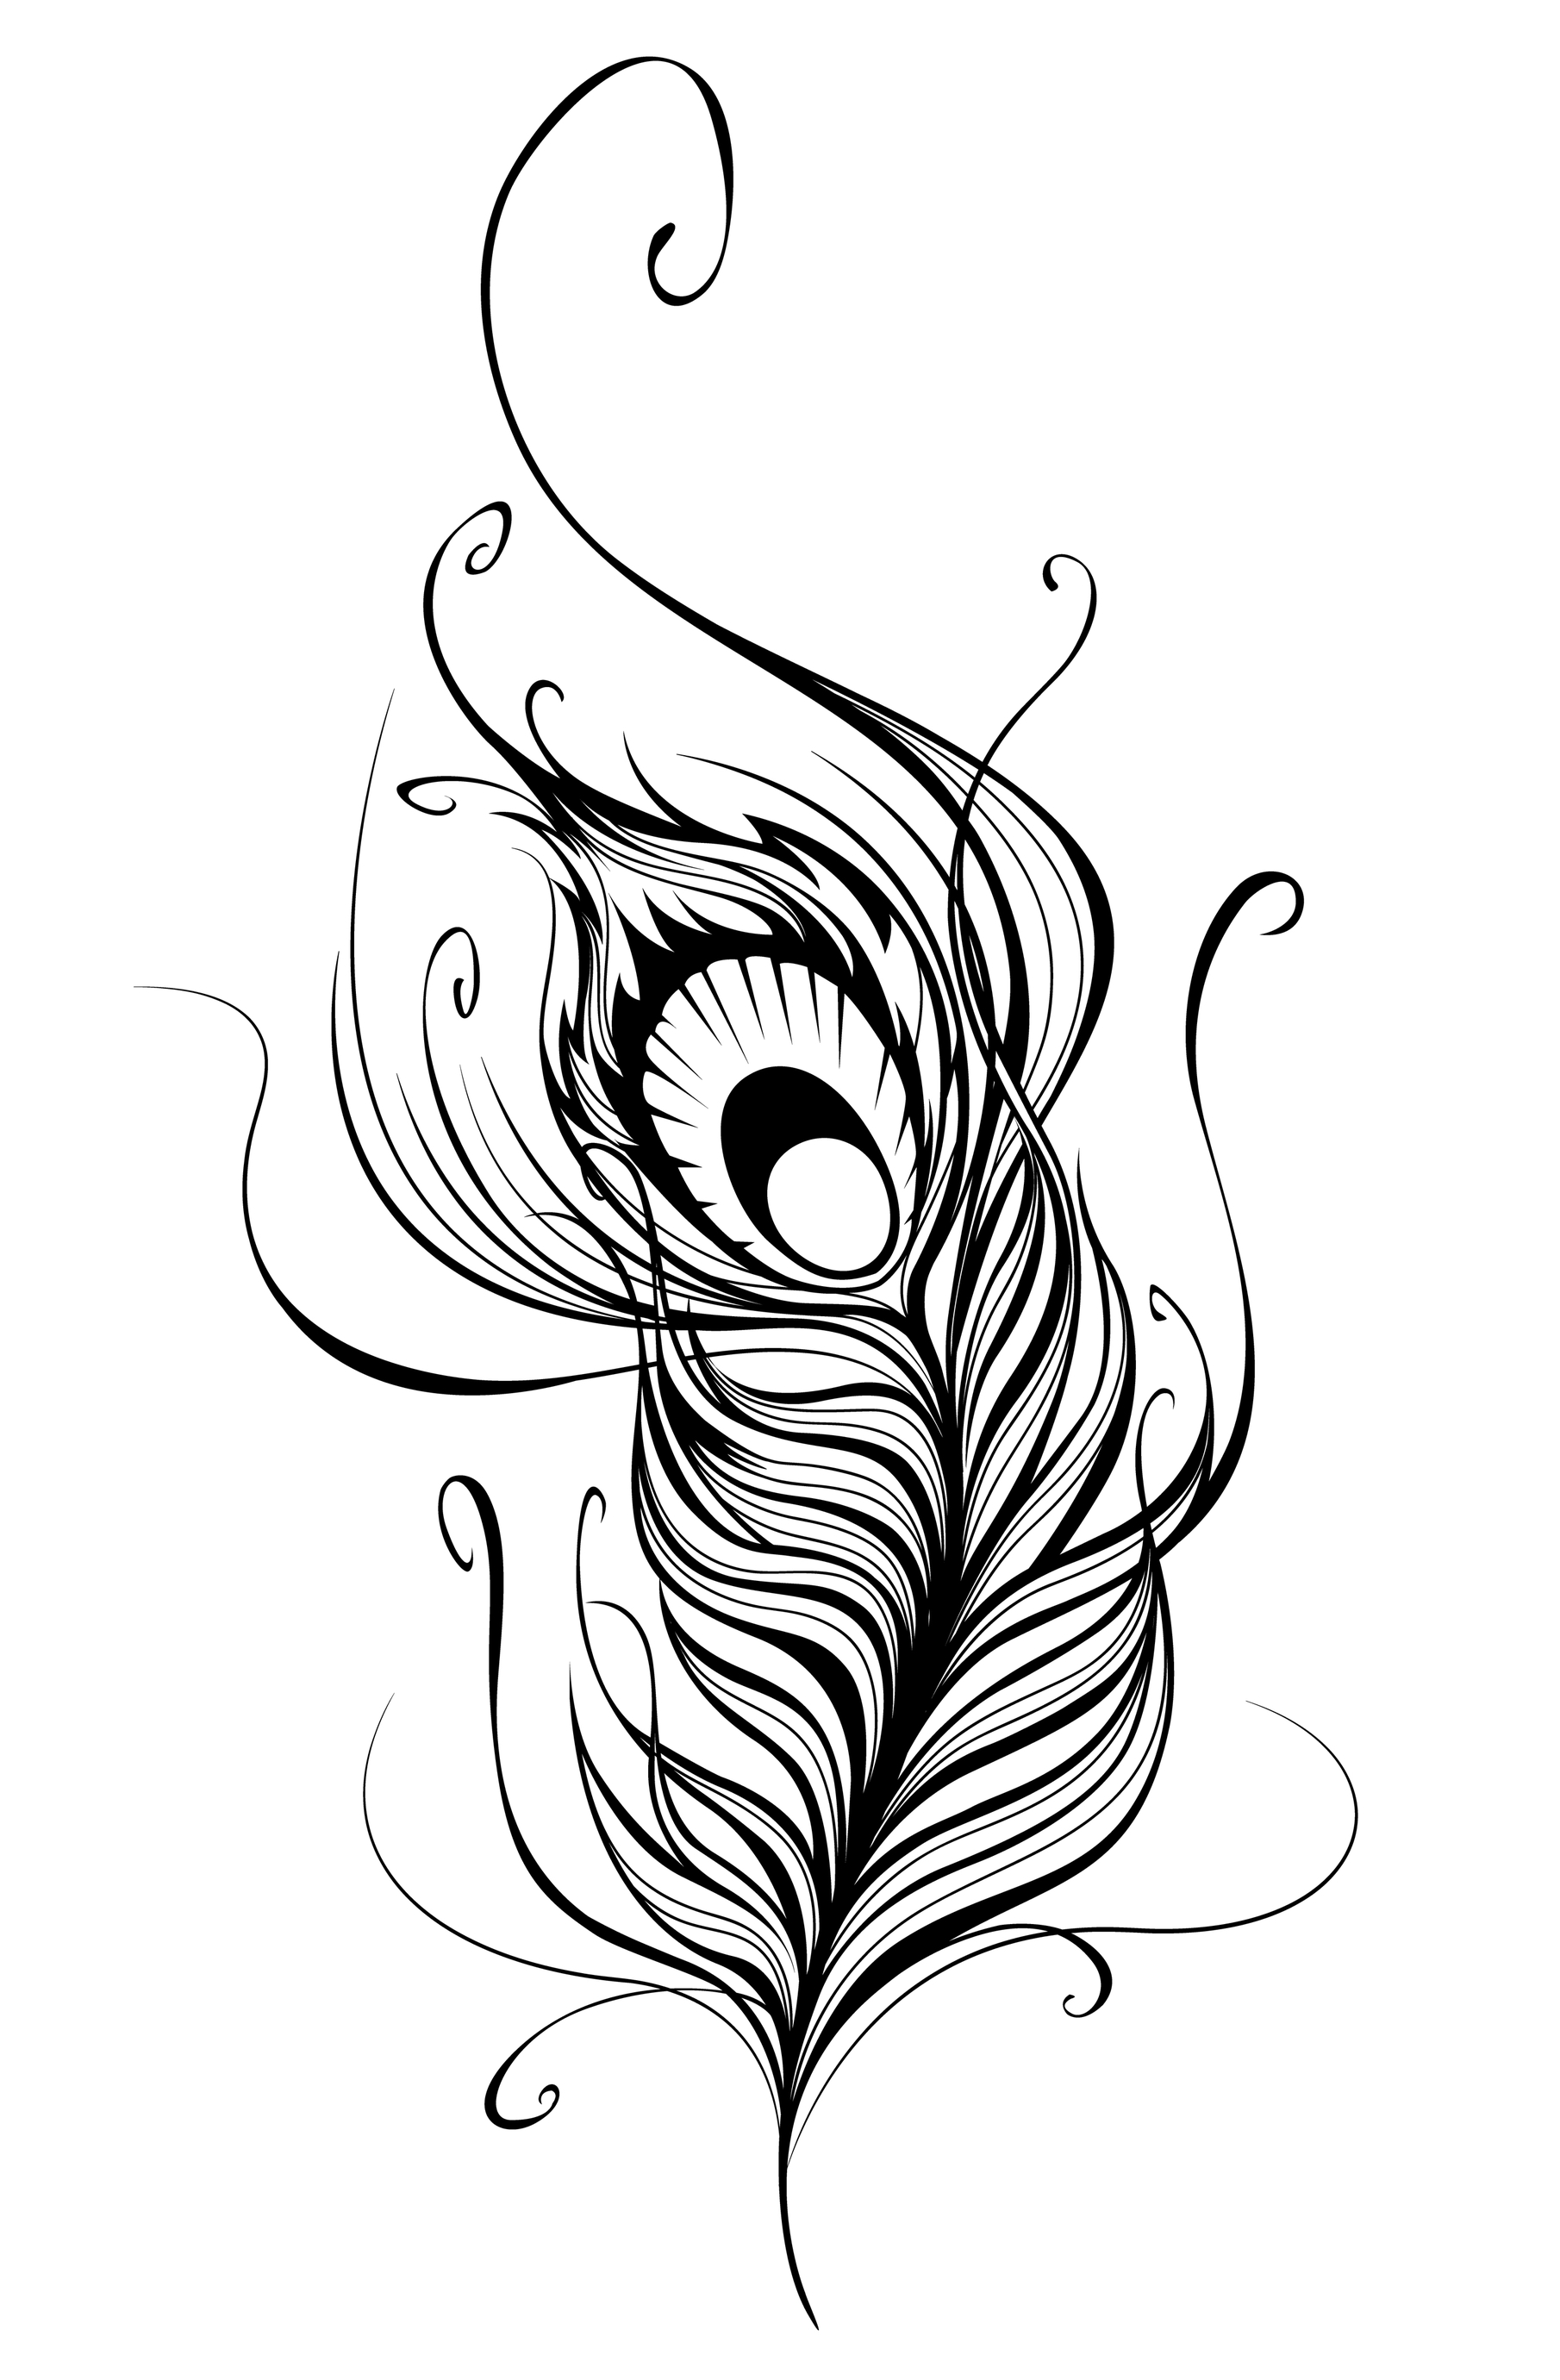 Line Drawing Of Peacock : Peacock feather border designs clipart panda free